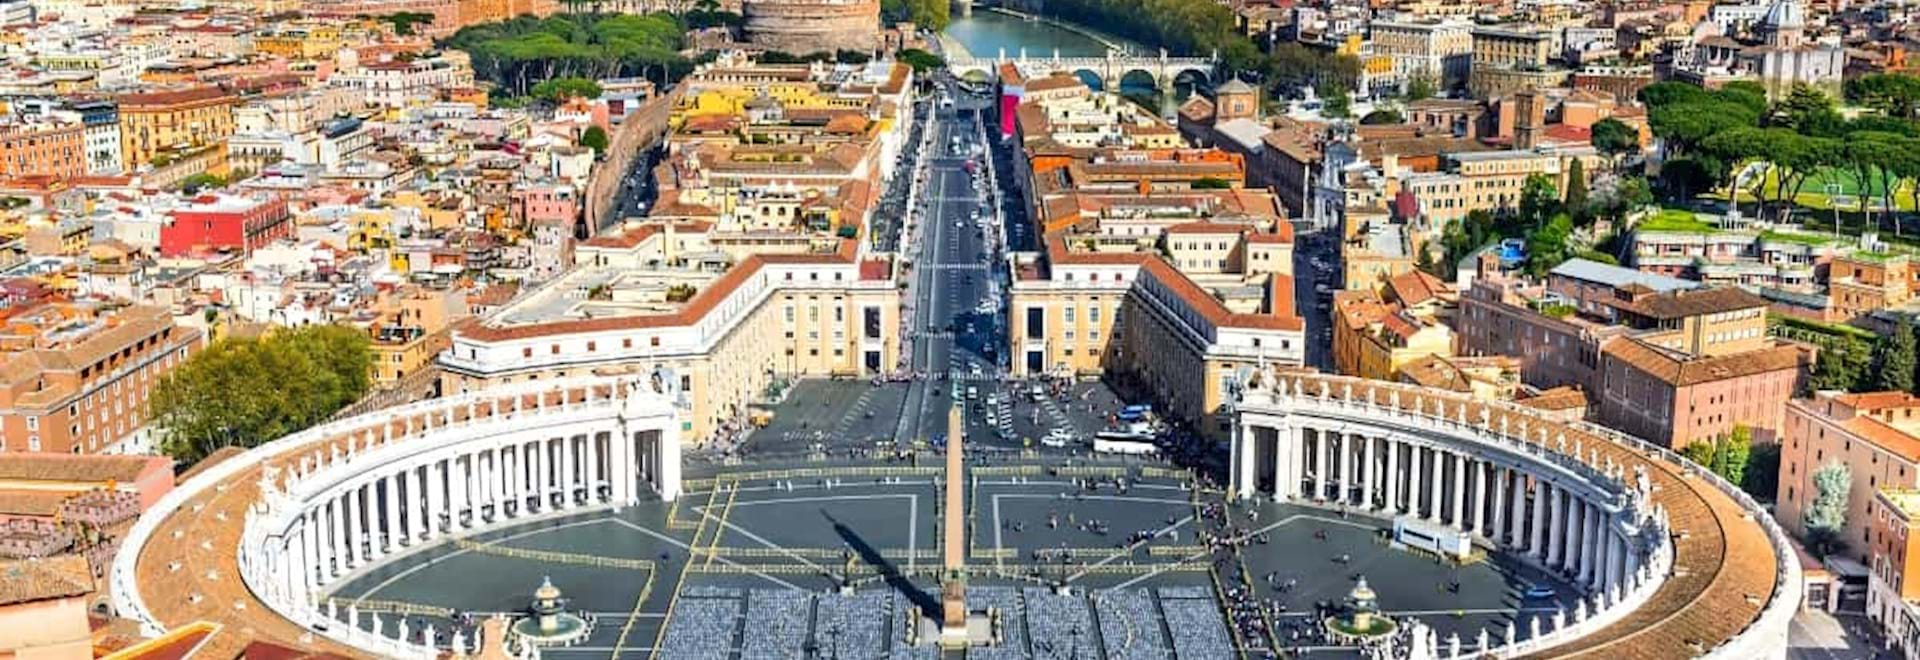 View of St. Peter's Square seen from the St. Peter's Basilica Dome